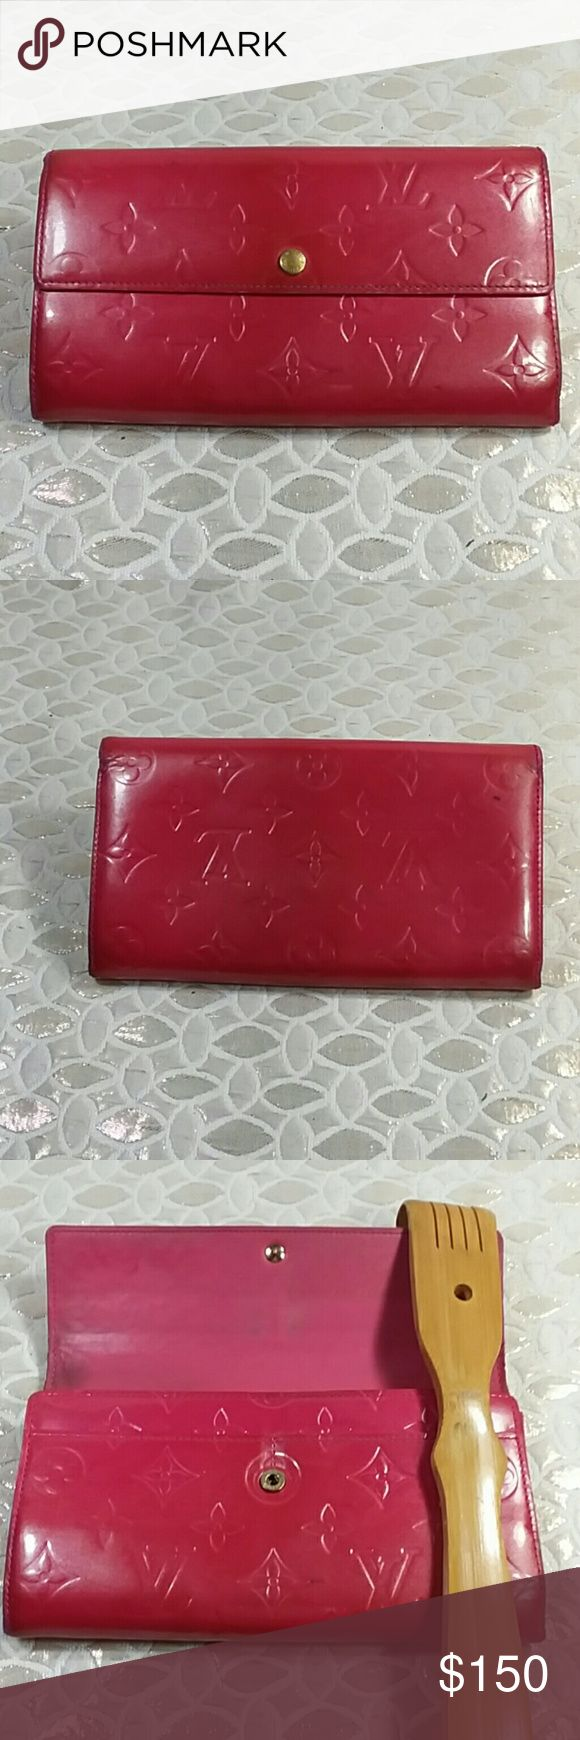 Authentic Louis Vuitton Sarah Long Wallet. Leather had some stains and showed wearing on the corners due to folding. The wallet was made in France with a,date codeTH 0030. The dimension is 4, 7 and 1. Louis Vuitton Accessories